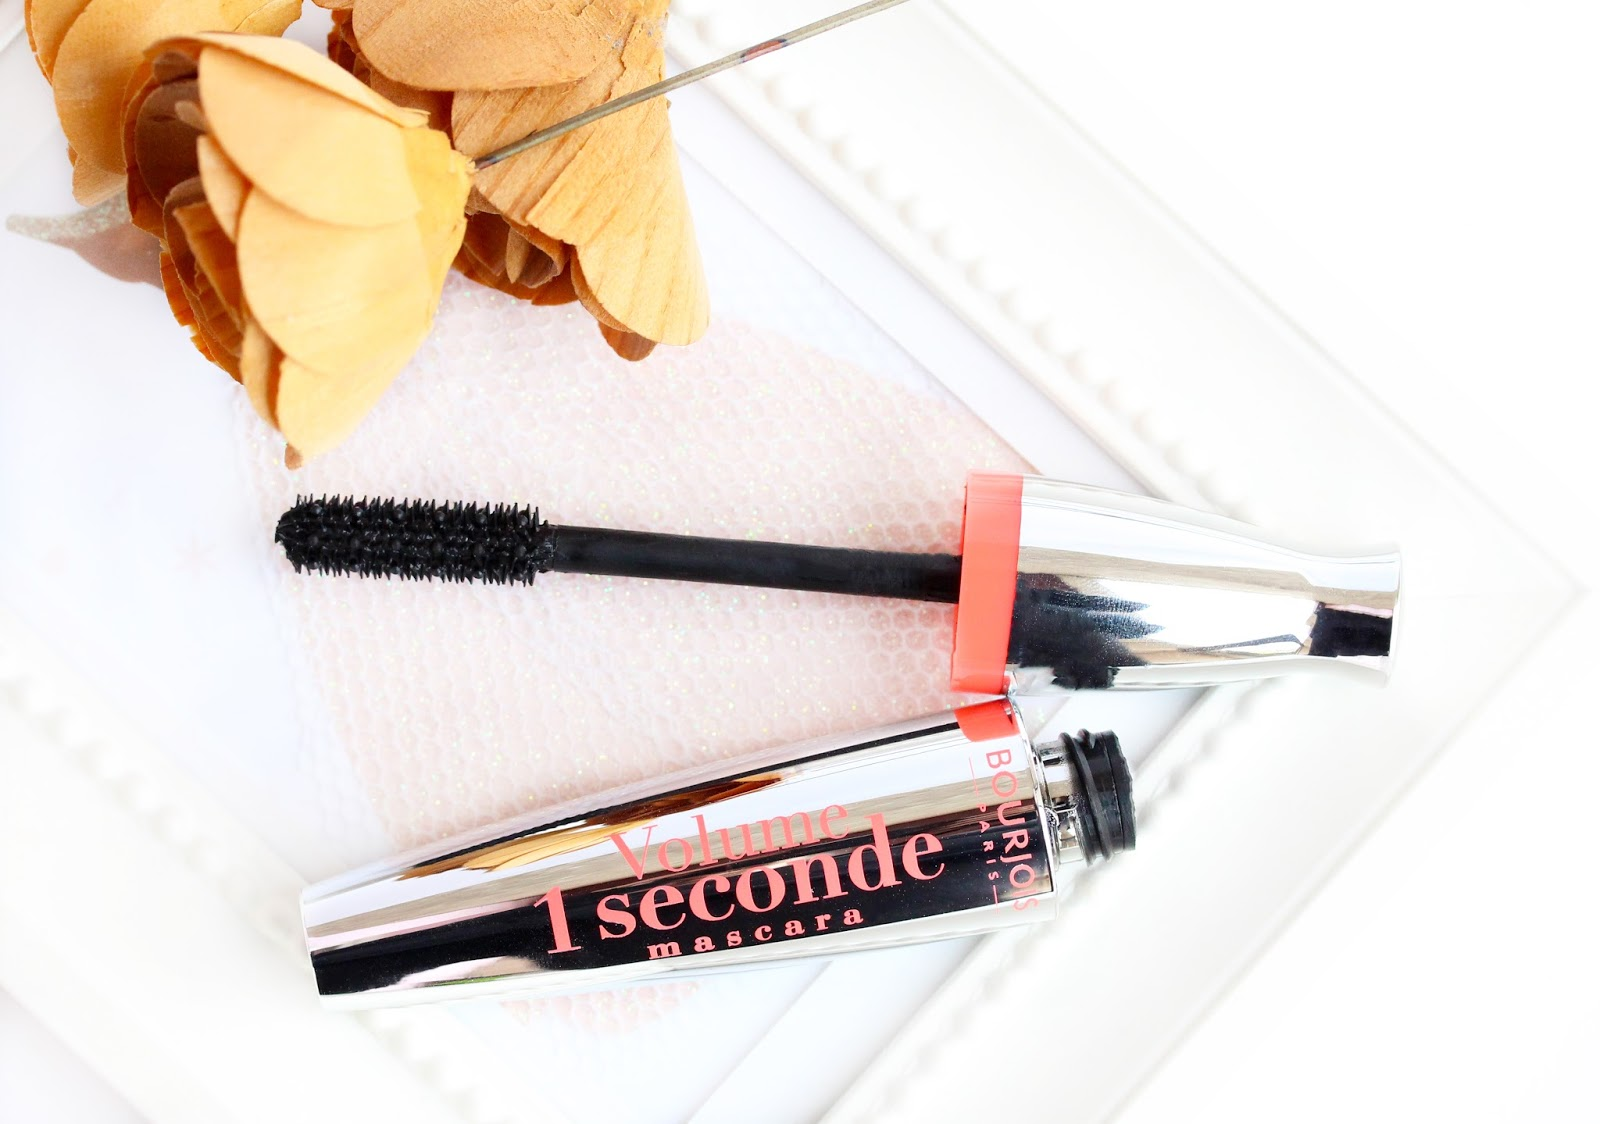 Bourjous Volume 1 Seconde Mascara